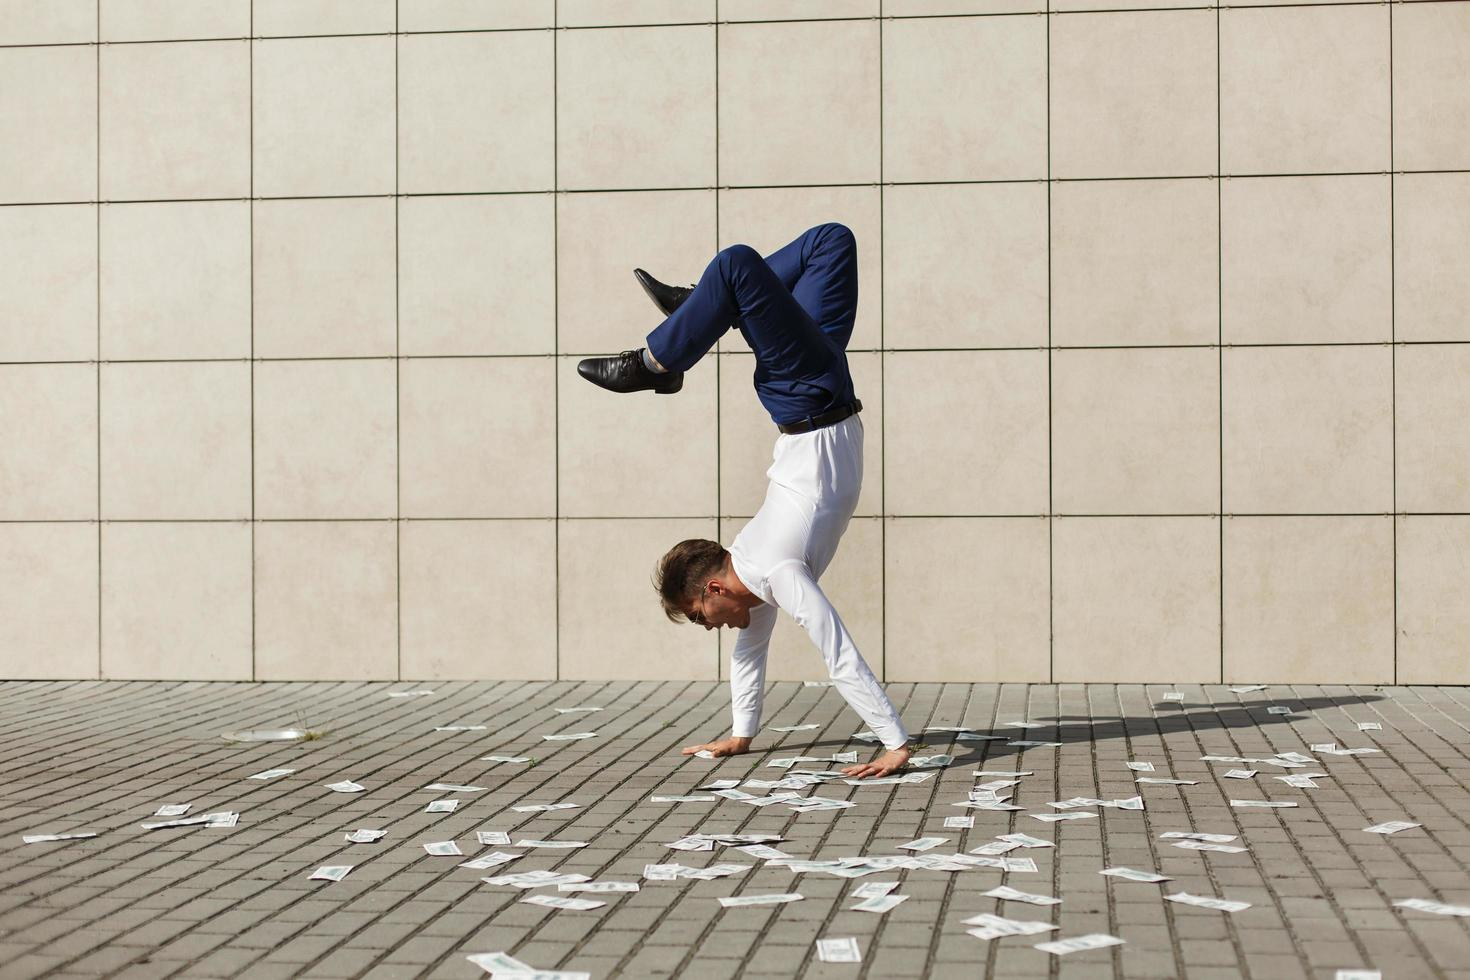 Doing a hand stand photo